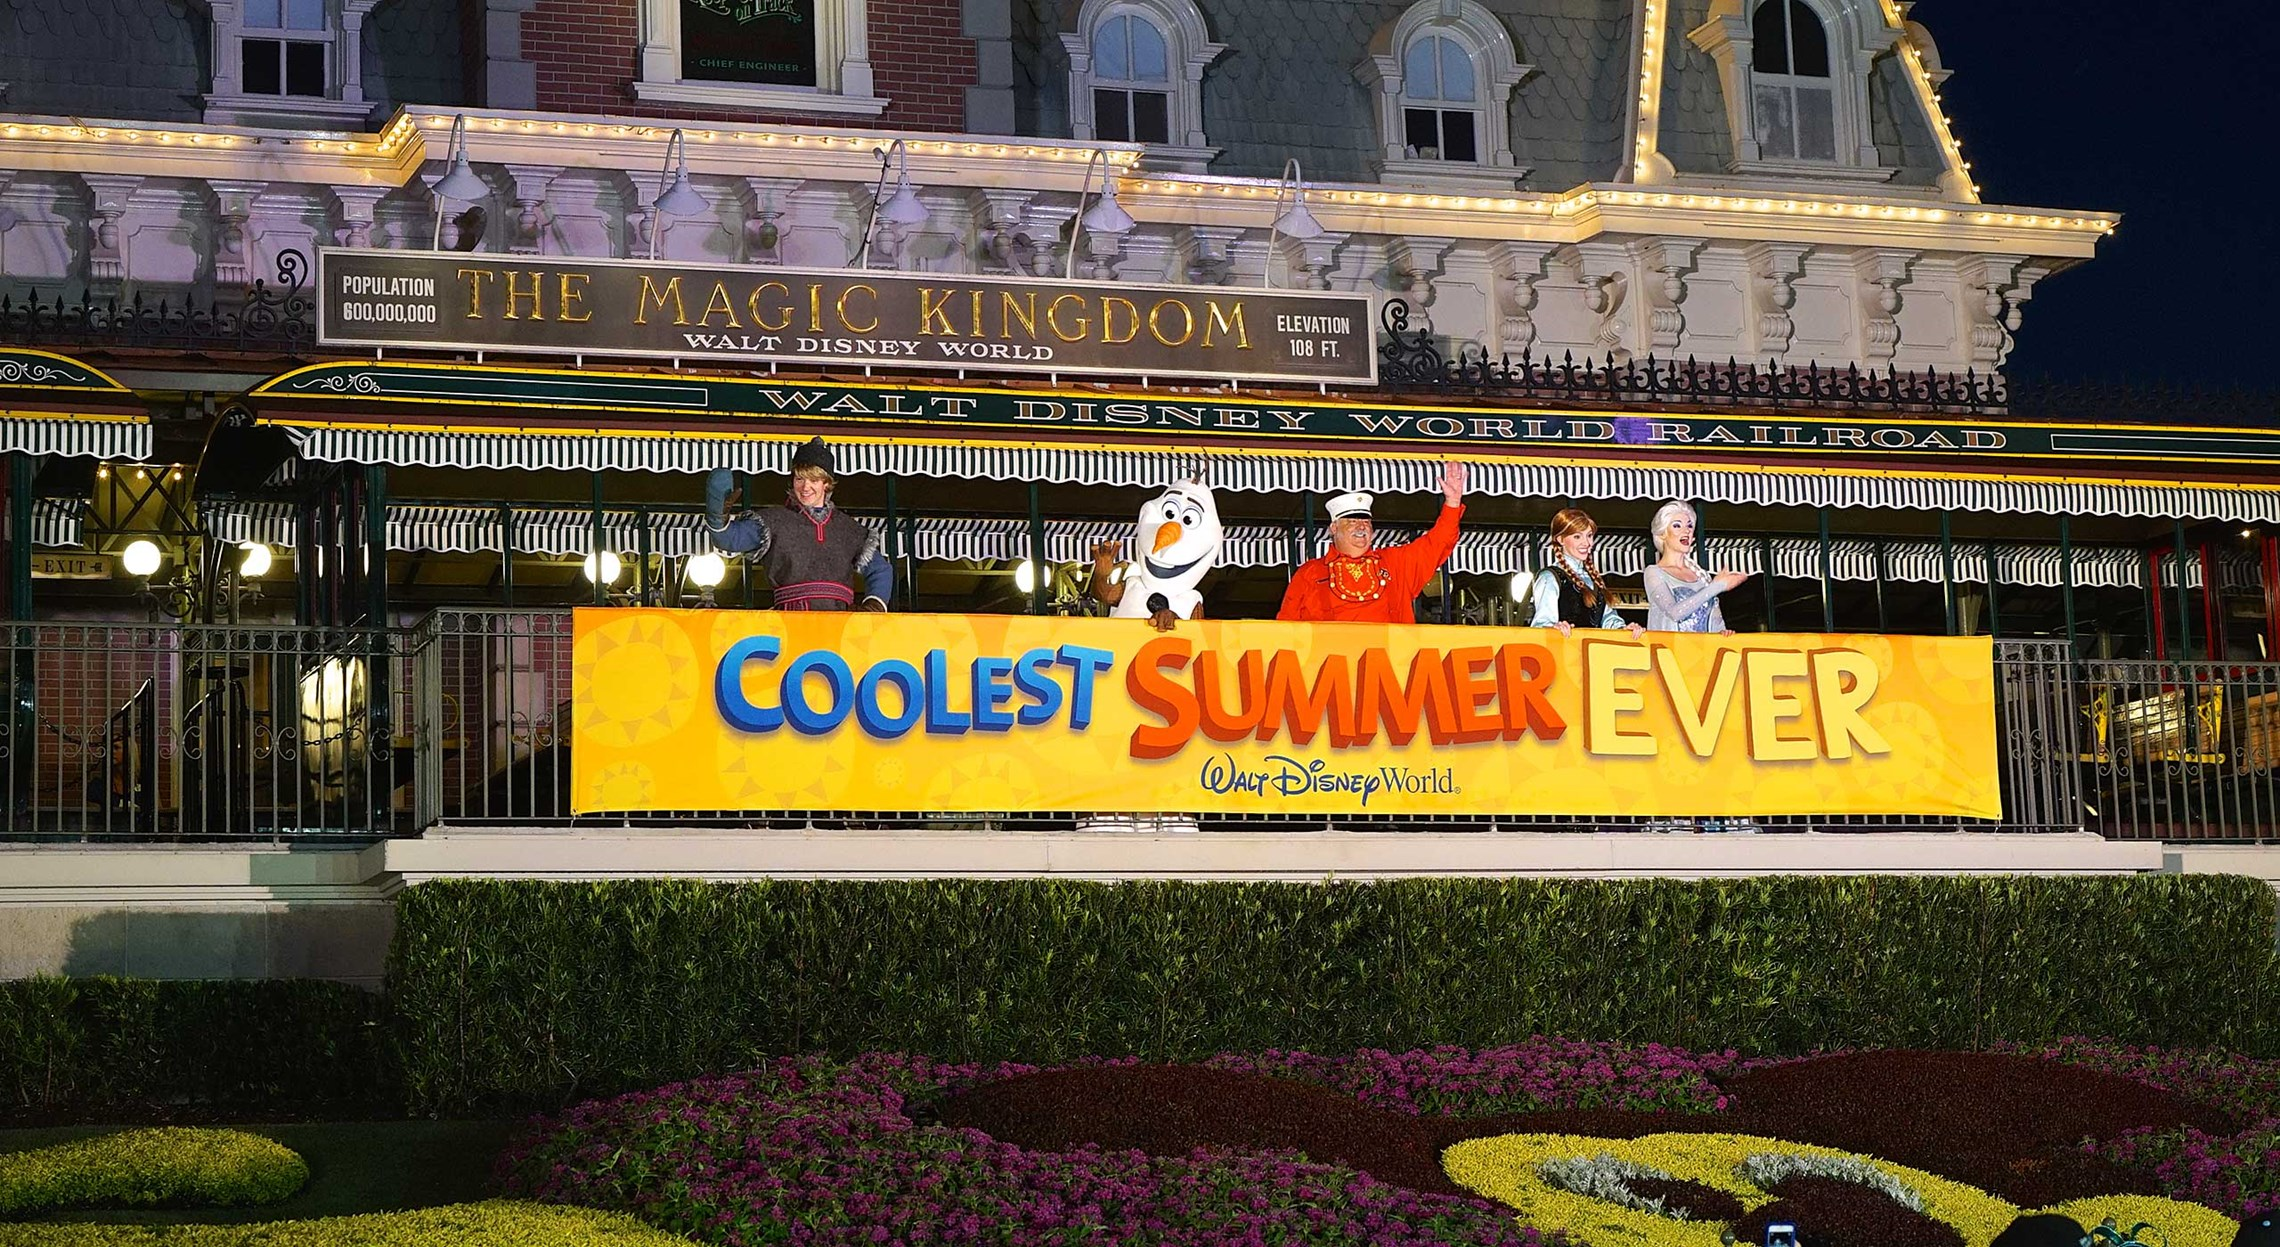 Coolest Summer Ever at the Magic Kingdom